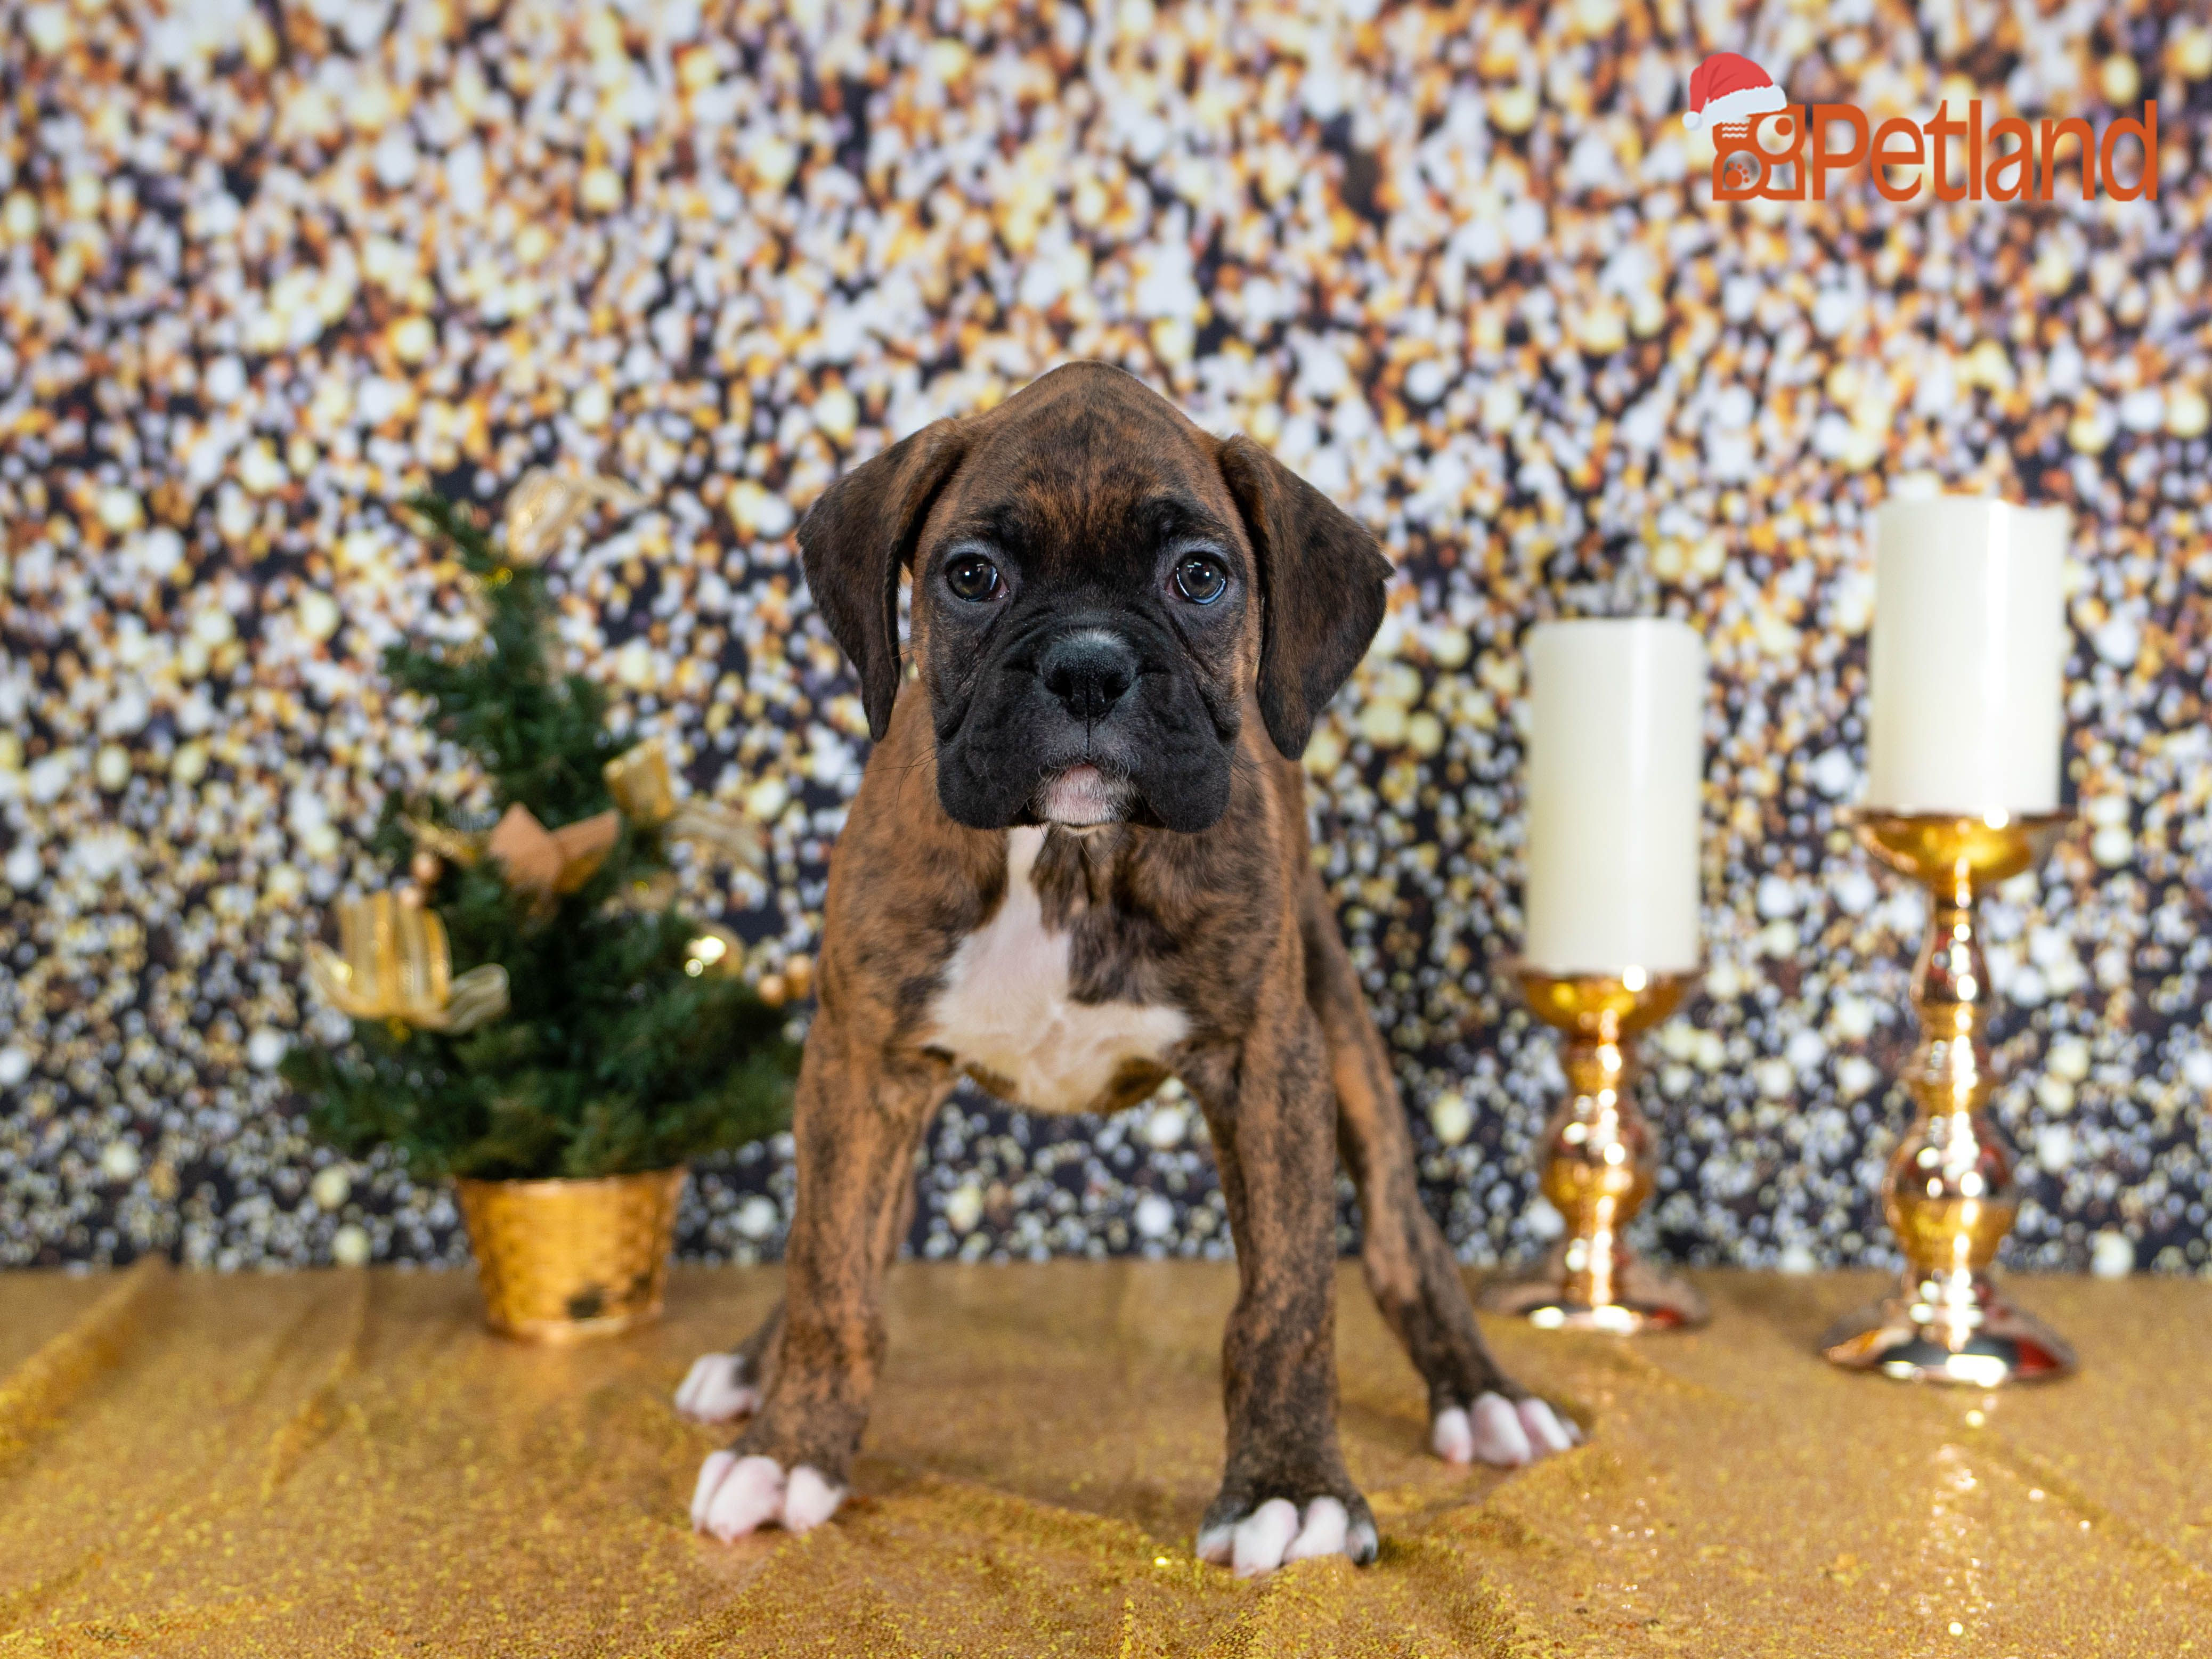 Puppies For Sale Puppy Friends Puppies Dog Lovers